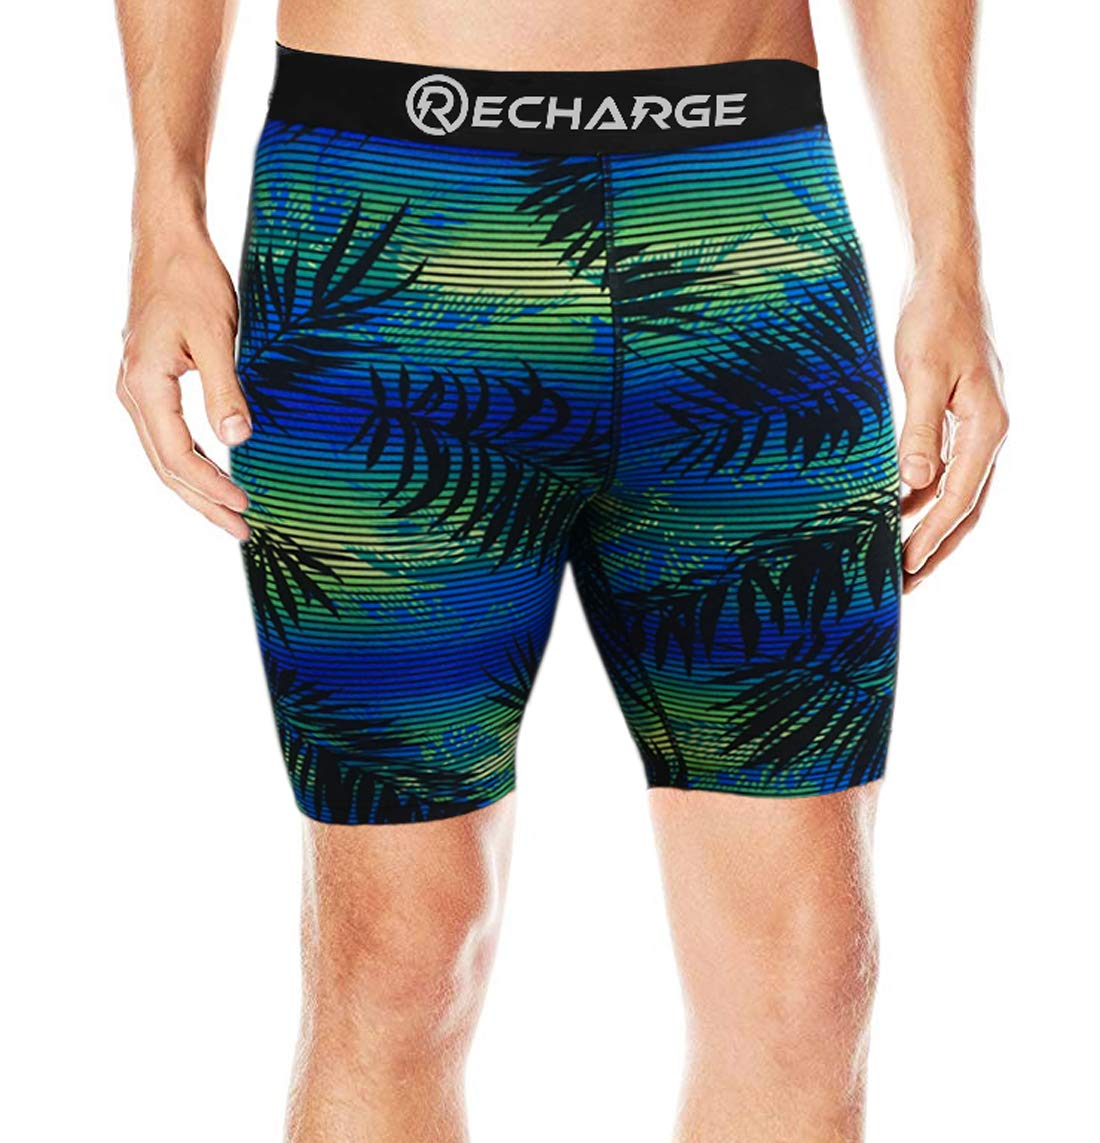 3bc561c01b Recharge Men Polyester Compression Sports Shorts Half Tights: Amazon.in:  Sports, Fitness & Outdoors